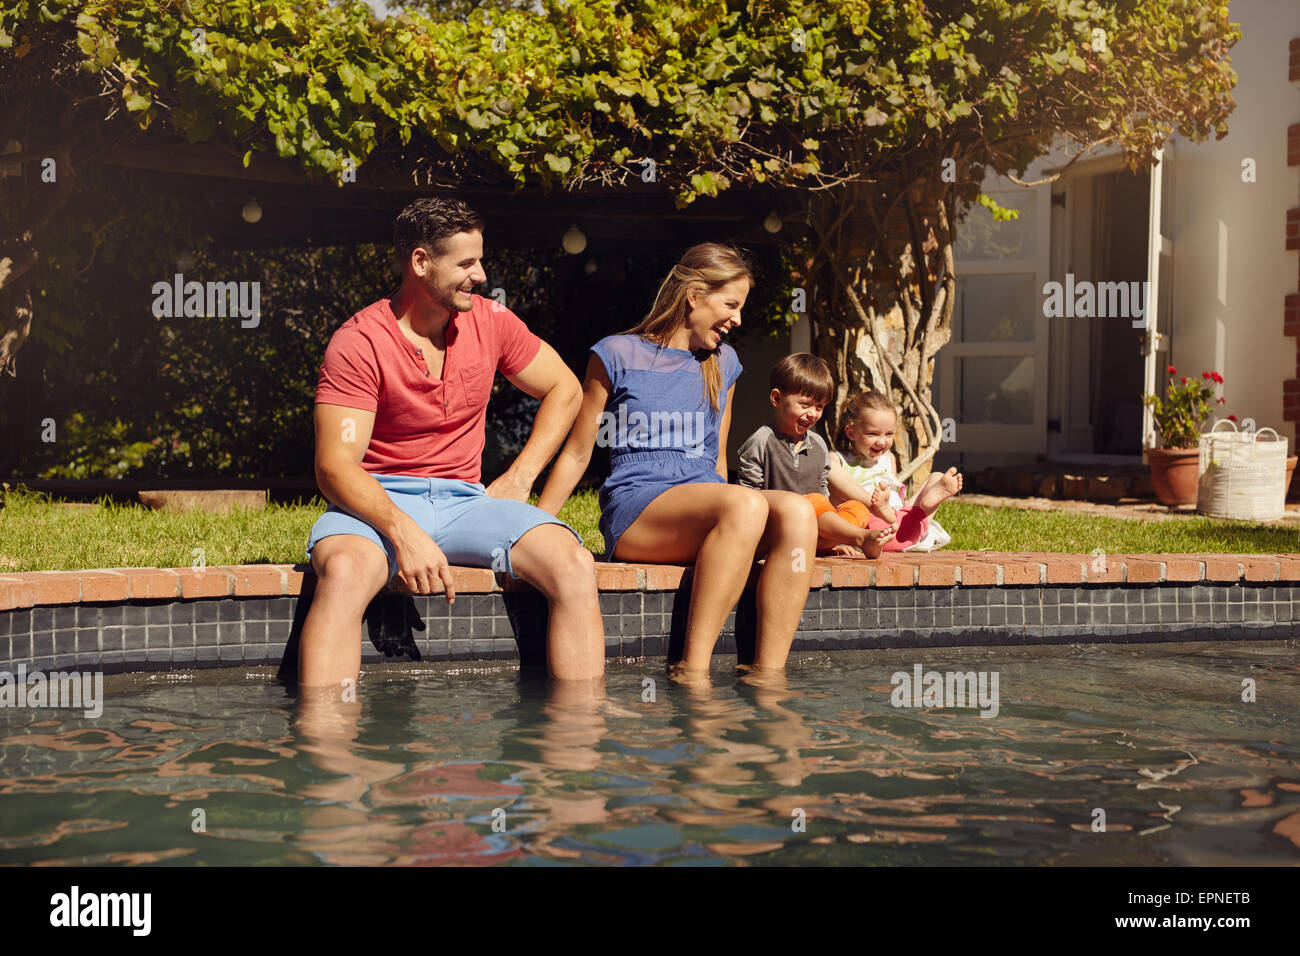 Happy young couple sitting on the edge of swimming pool with their kids enjoying a hot summer day near pool. Couple's - Stock Image